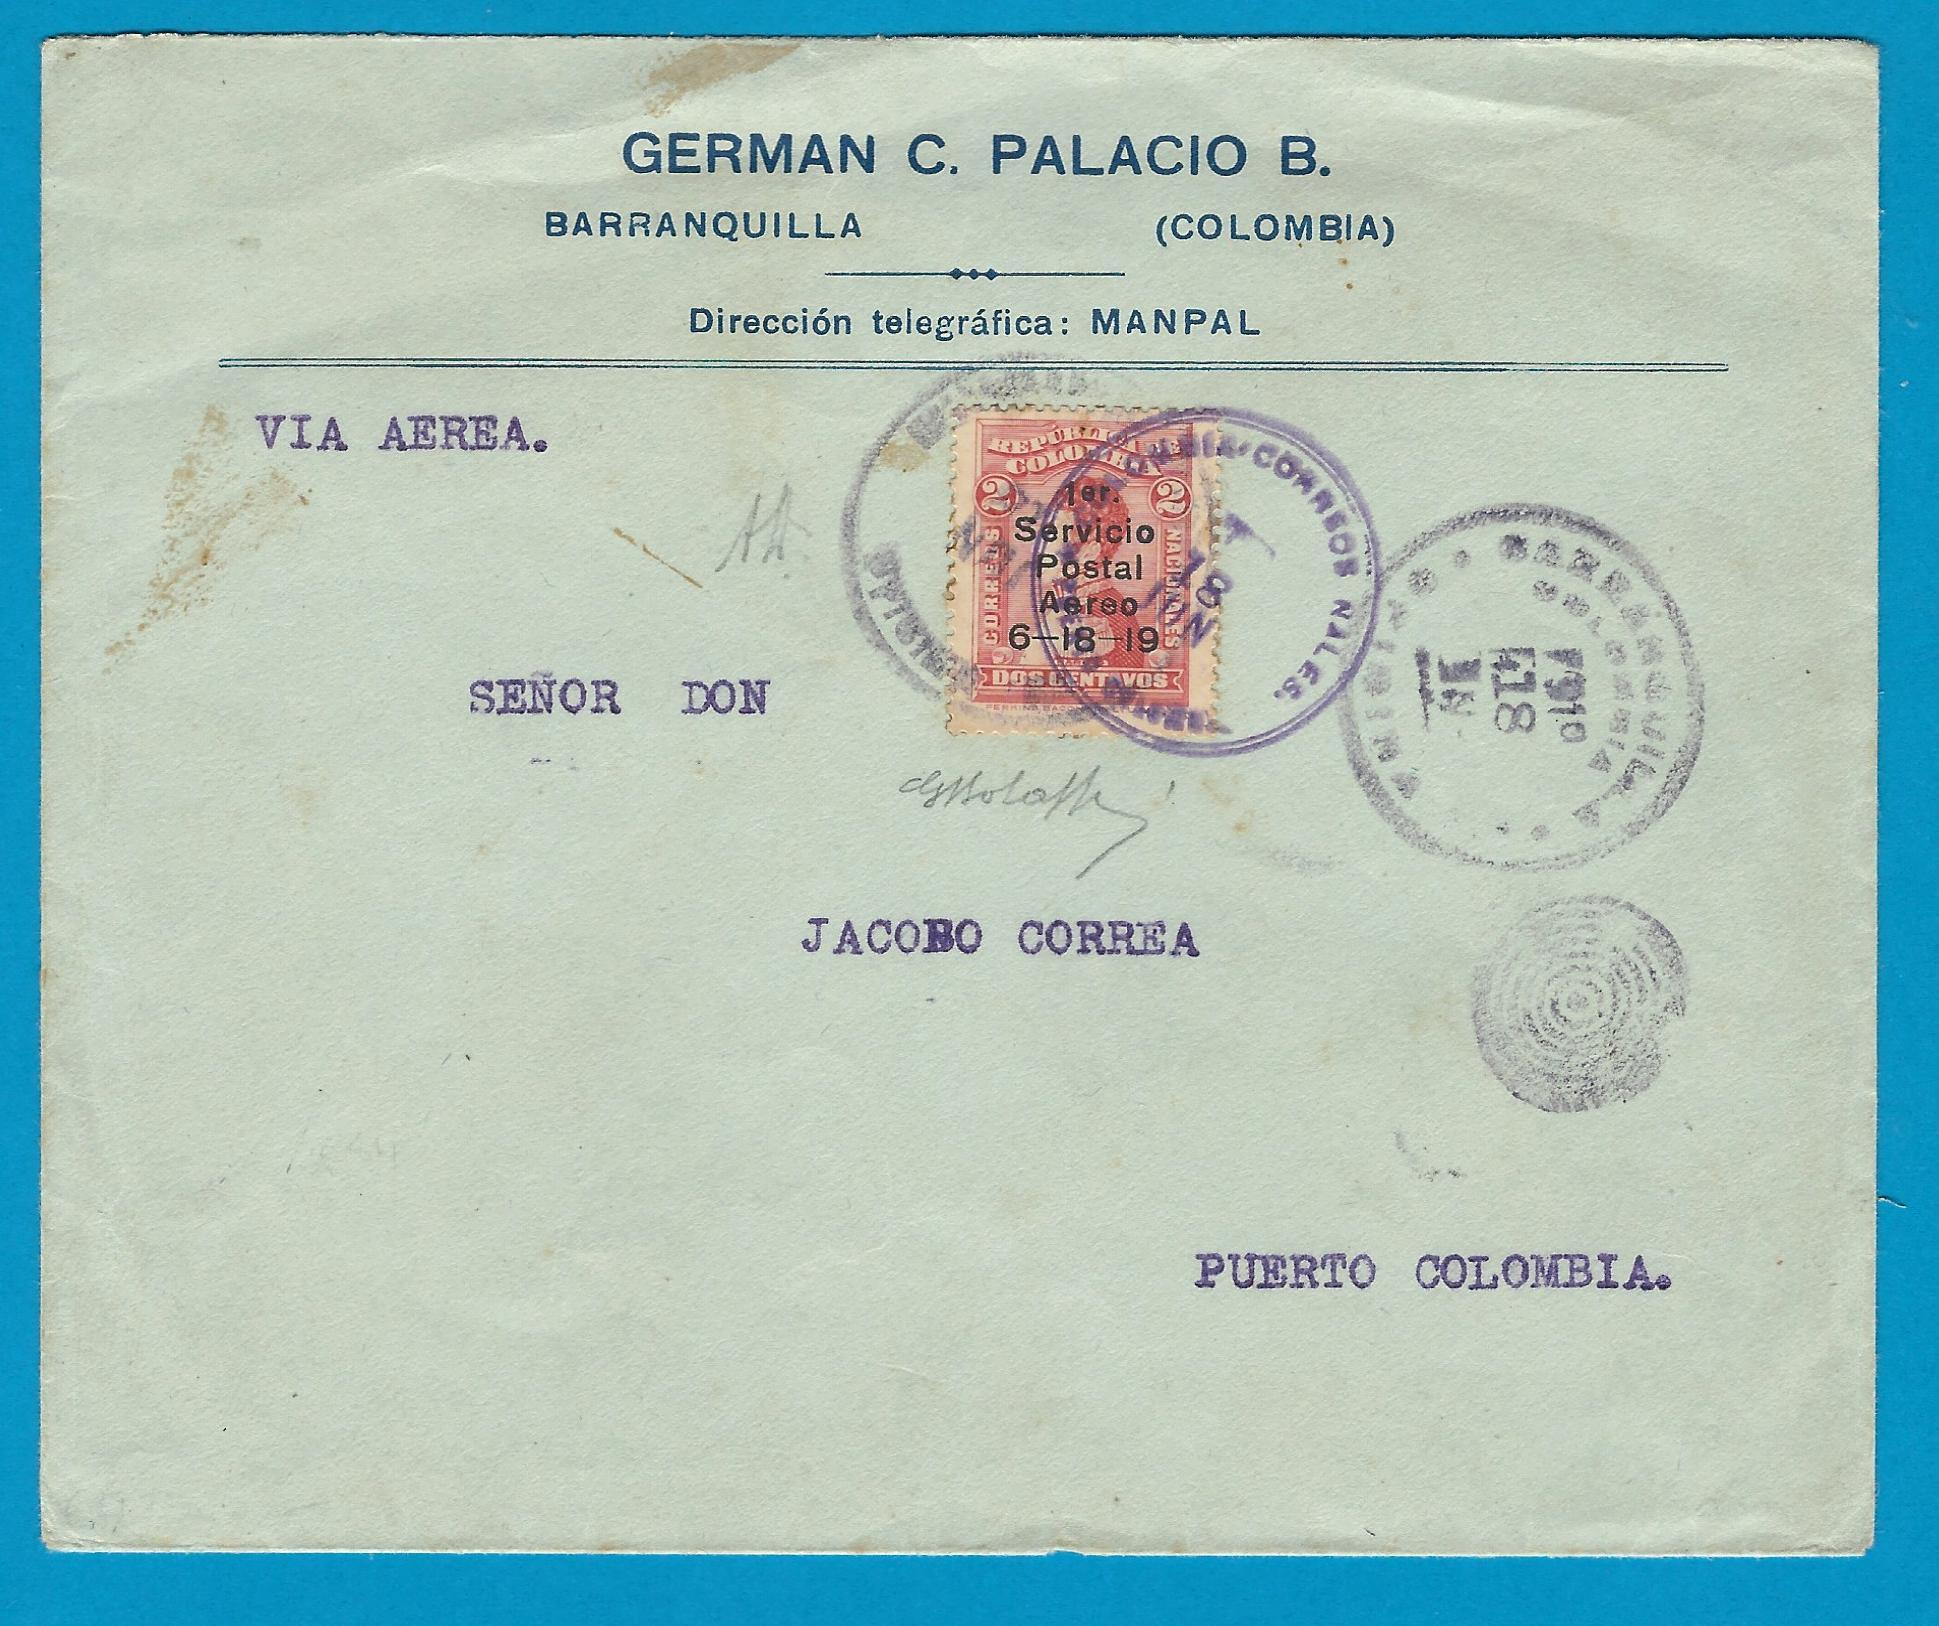 COLOMBIA airmail cover 1919 Barranquilla to Puerto Colombia COL027